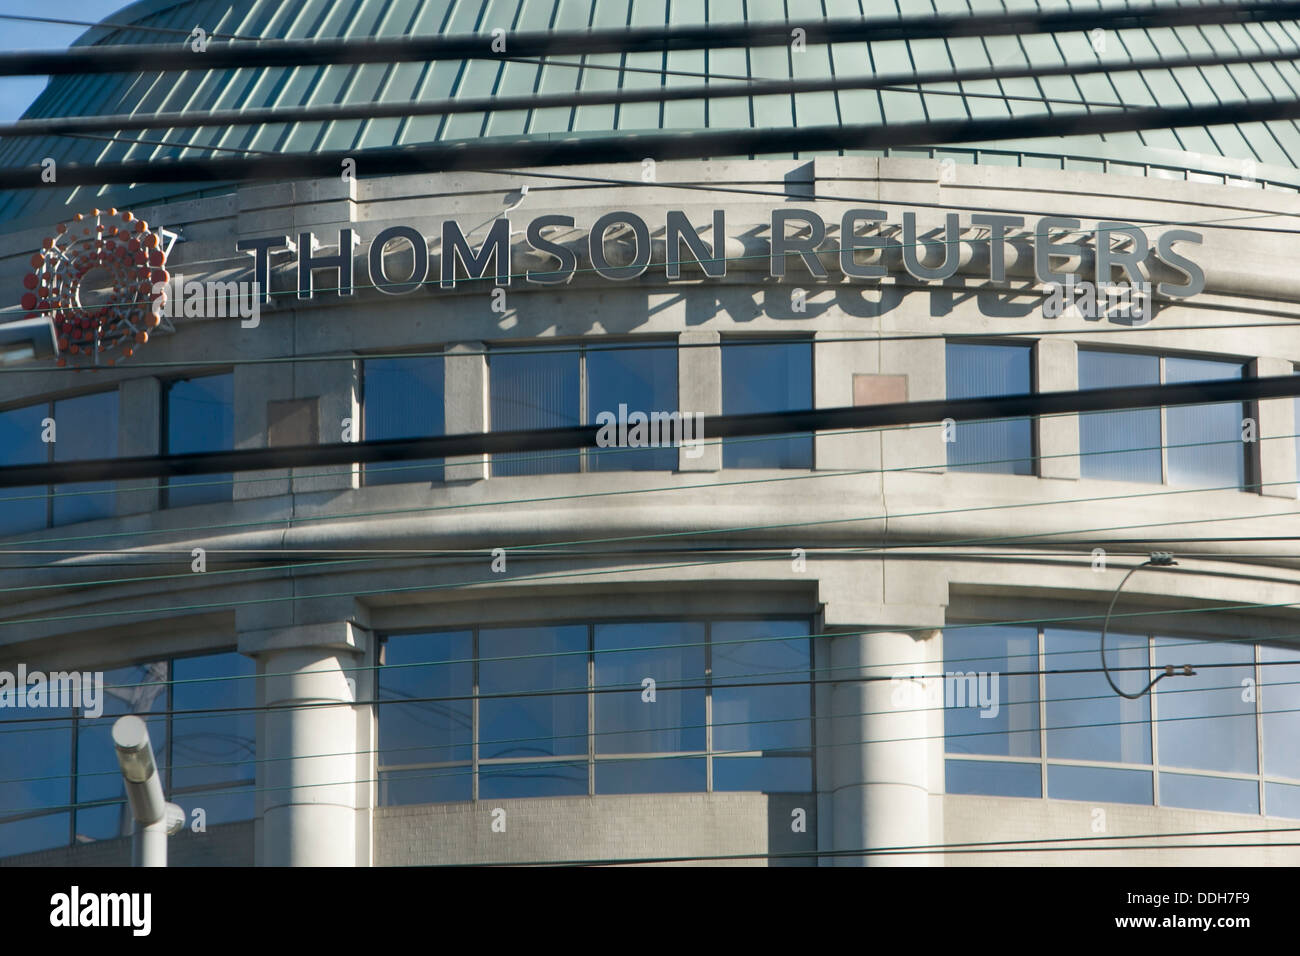 Thomson Reuters Stock Photos & Thomson Reuters Stock Images